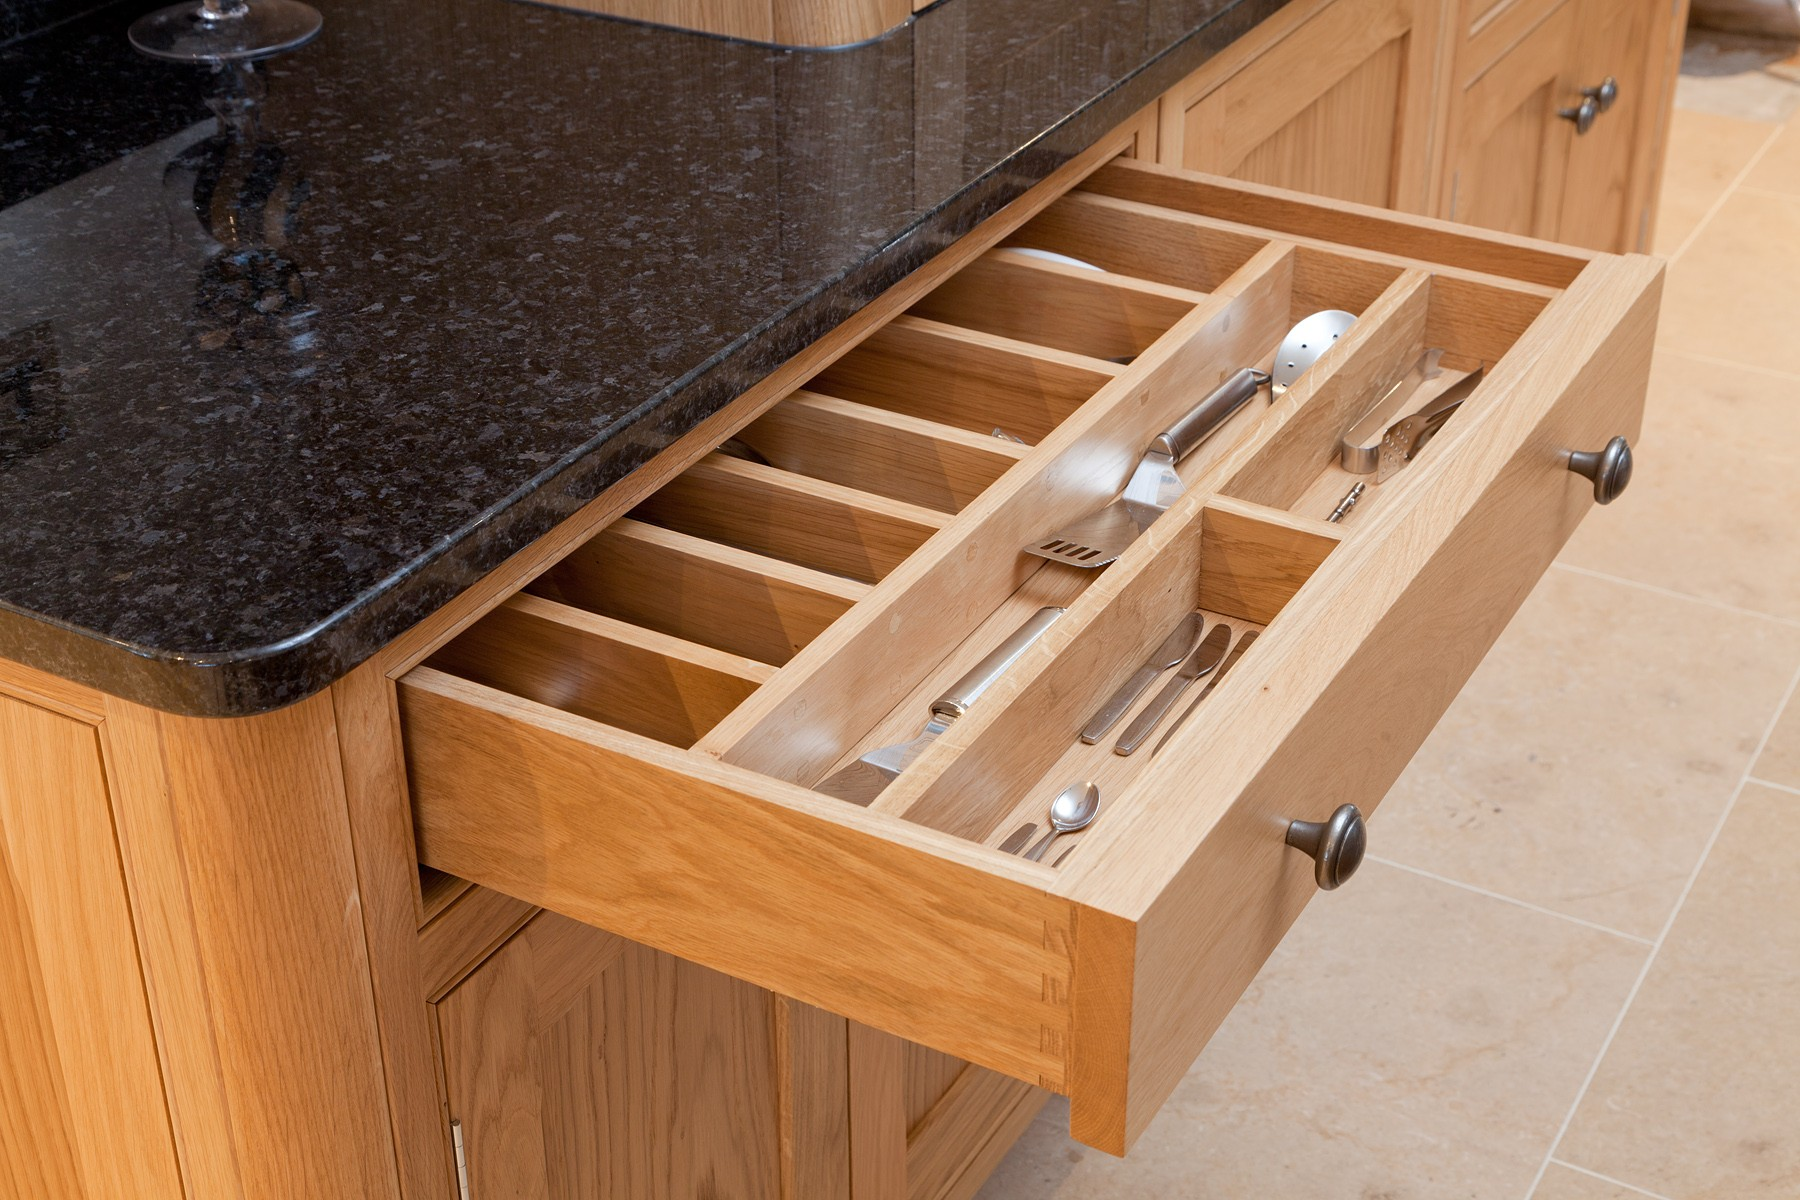 bespoke spice racks and cutlery trays probox drawers